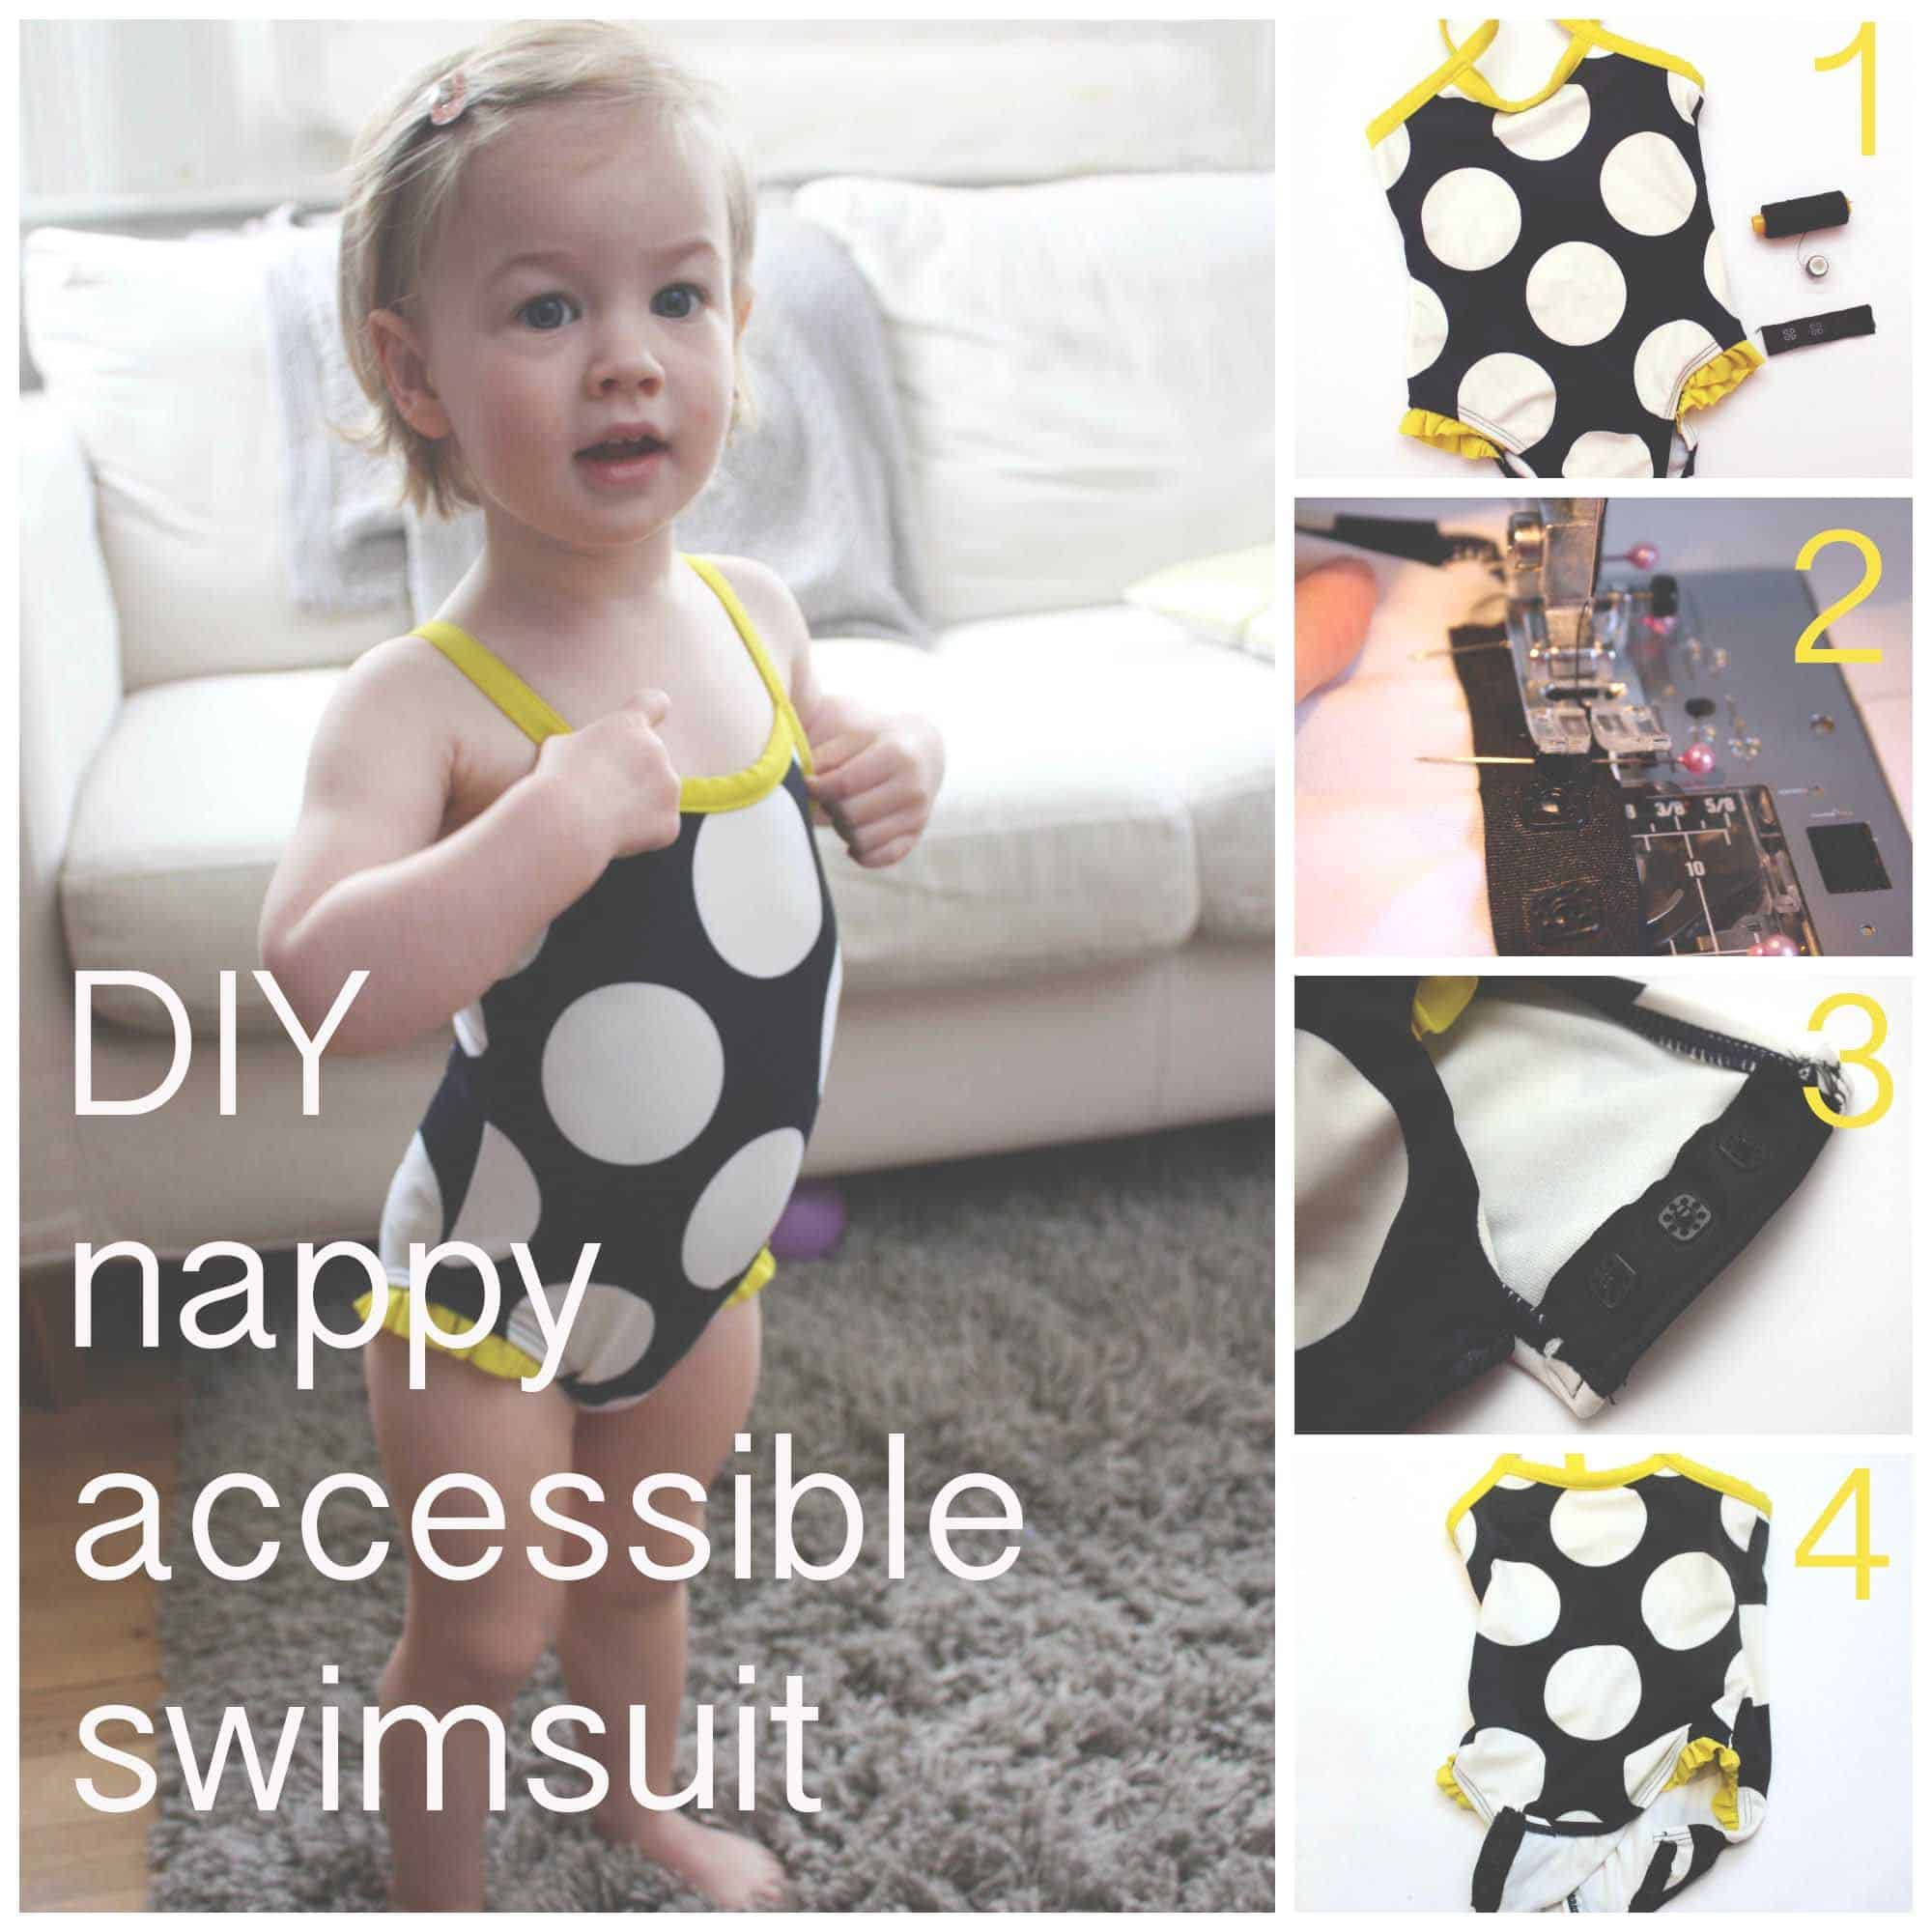 DIY diaper accessible toddler suit